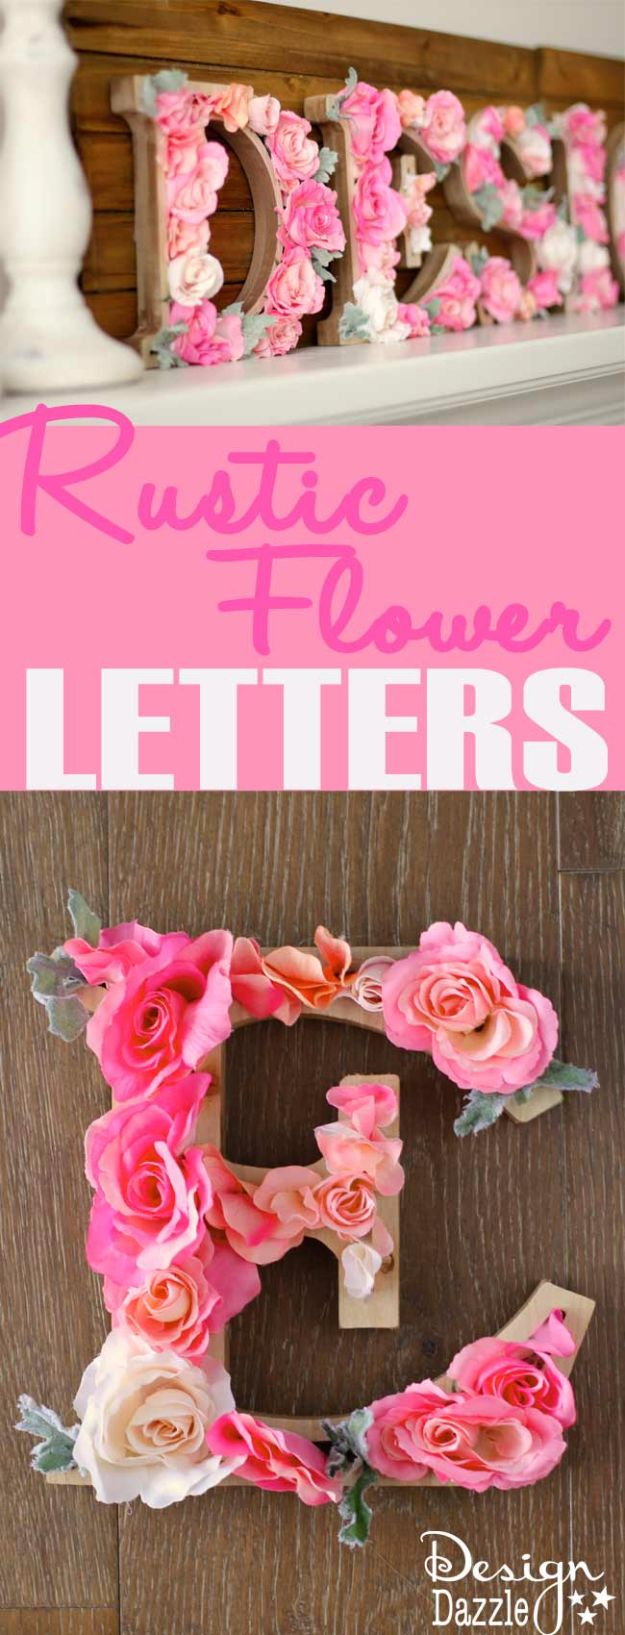 15 Lovely DIY Ideas Of Words And Letters To Decorate With